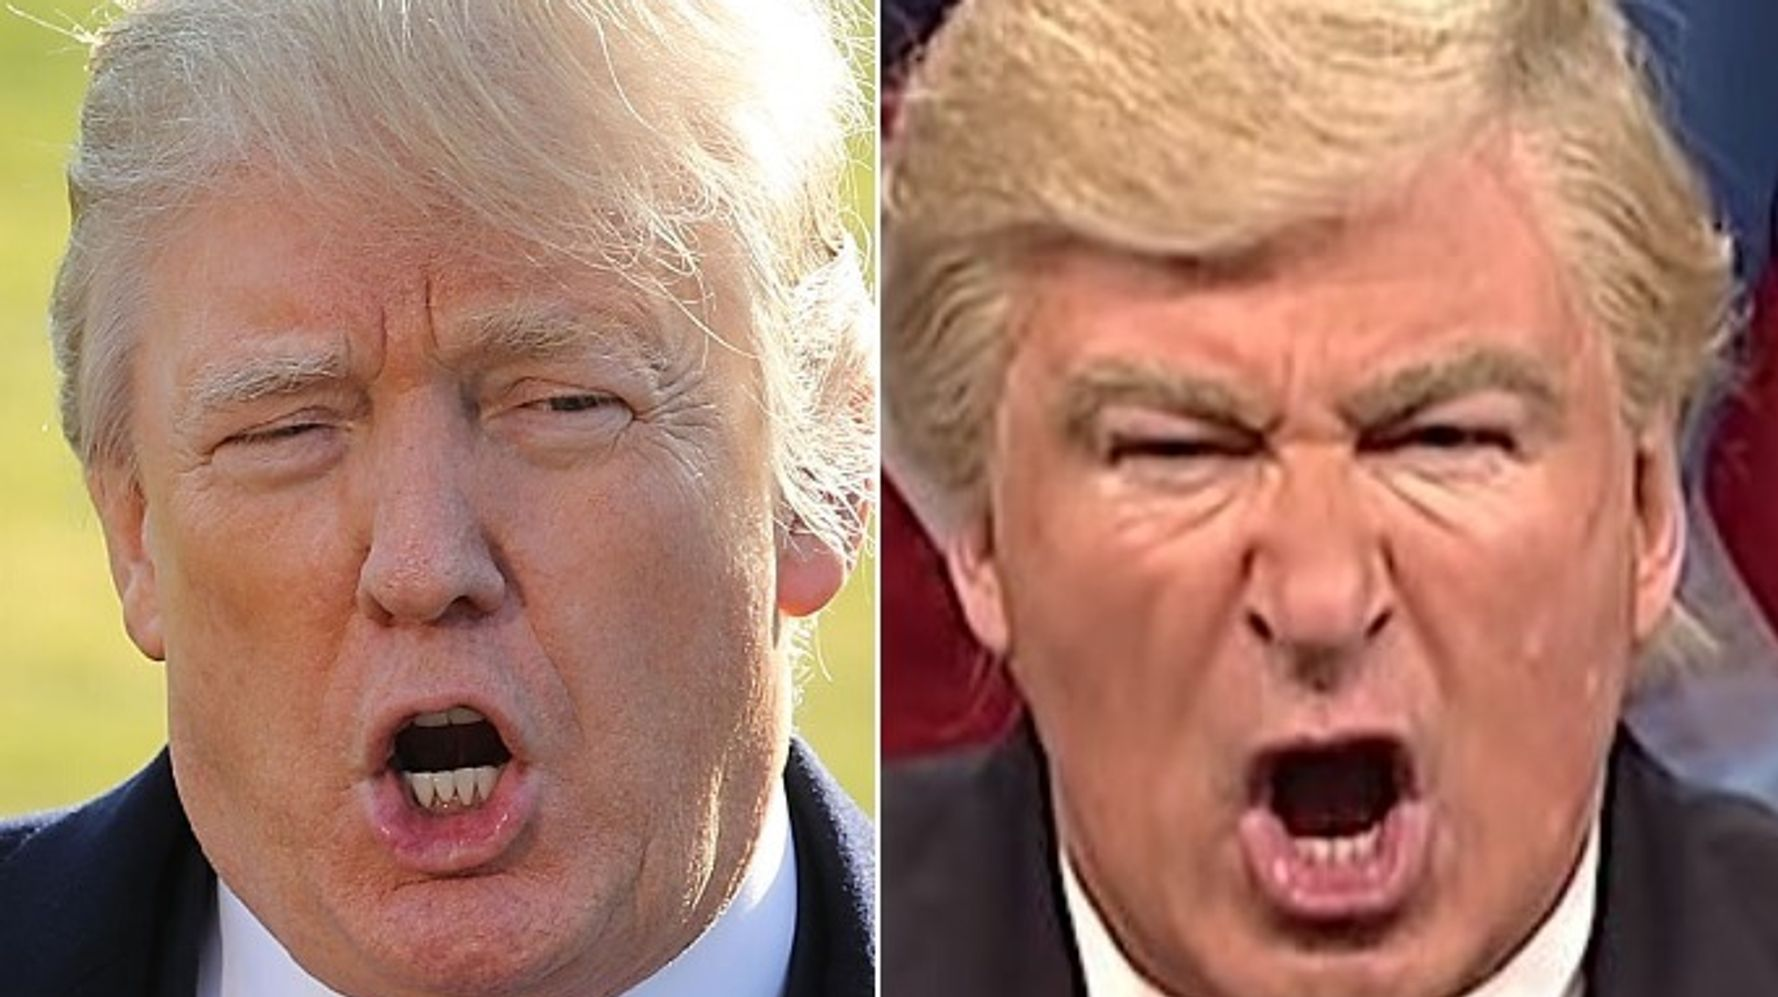 Trump Rages Against 'Saturday Night Live' In Unhinged Conspiracy Rant